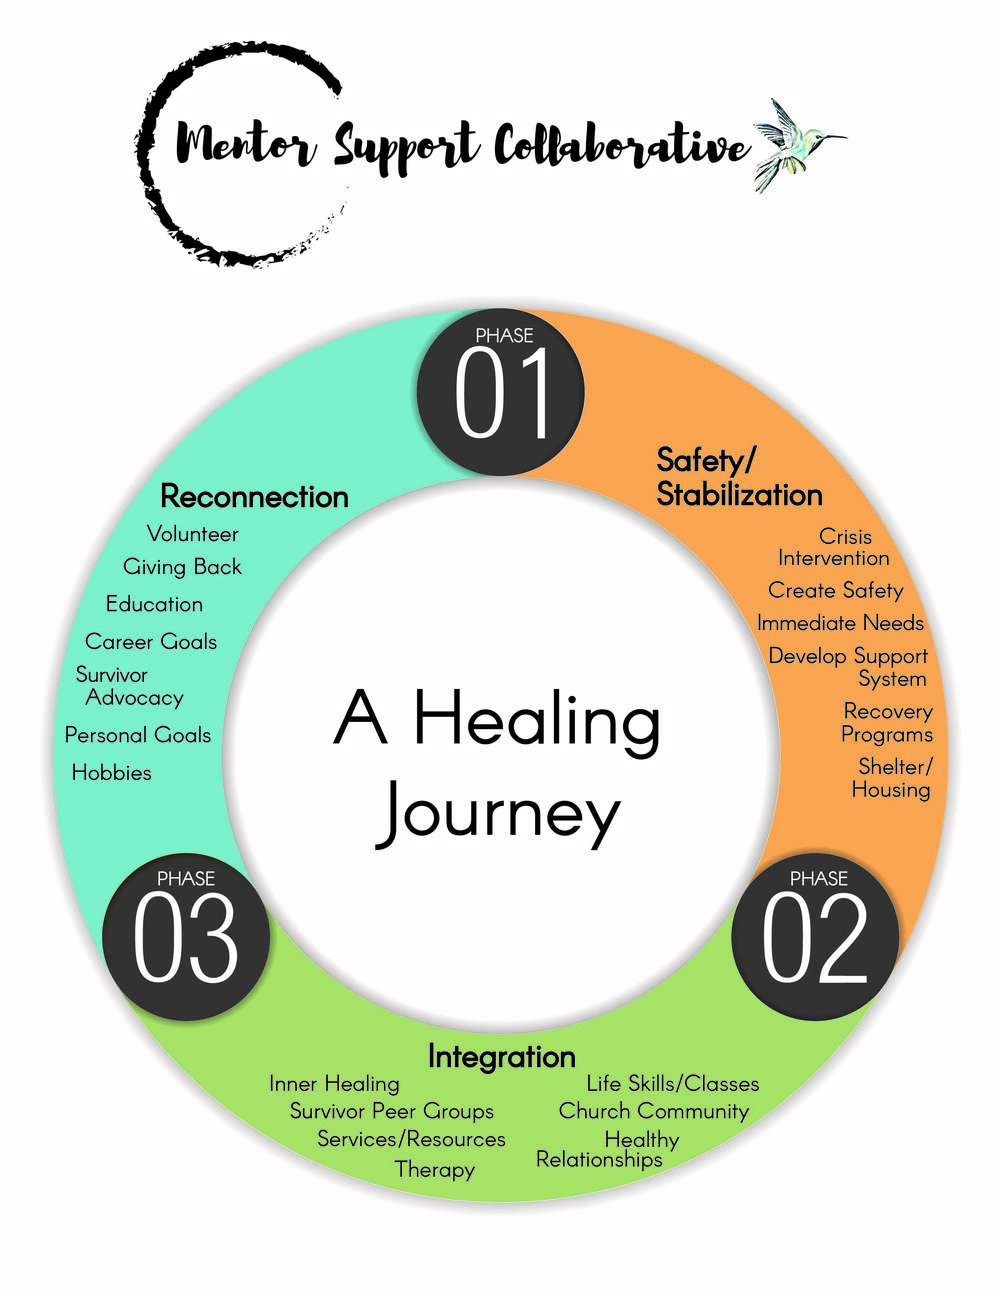 From Survivor to Thriver!   - We refer adult survivors who seek healing to Trauma-Informed counselors who have experience working with sexually exploited victims and to Trauma Informed Churches with a Survivor Support Ministry. Trained advocates and mentors walk alongside mentees through the healing journey.Based on clinical research, there are three phases of a healthy healing model. The categories listed in each phase have multiple options within that category. Every survivor is in a different place (physically, emotionally, and spiritually) so an action plan allows her to choose her own healing pathway with many options of programs, classes, counseling, therapy, and other aftercare resources offered by community partners and churches, both faith and non-faith based. For example,